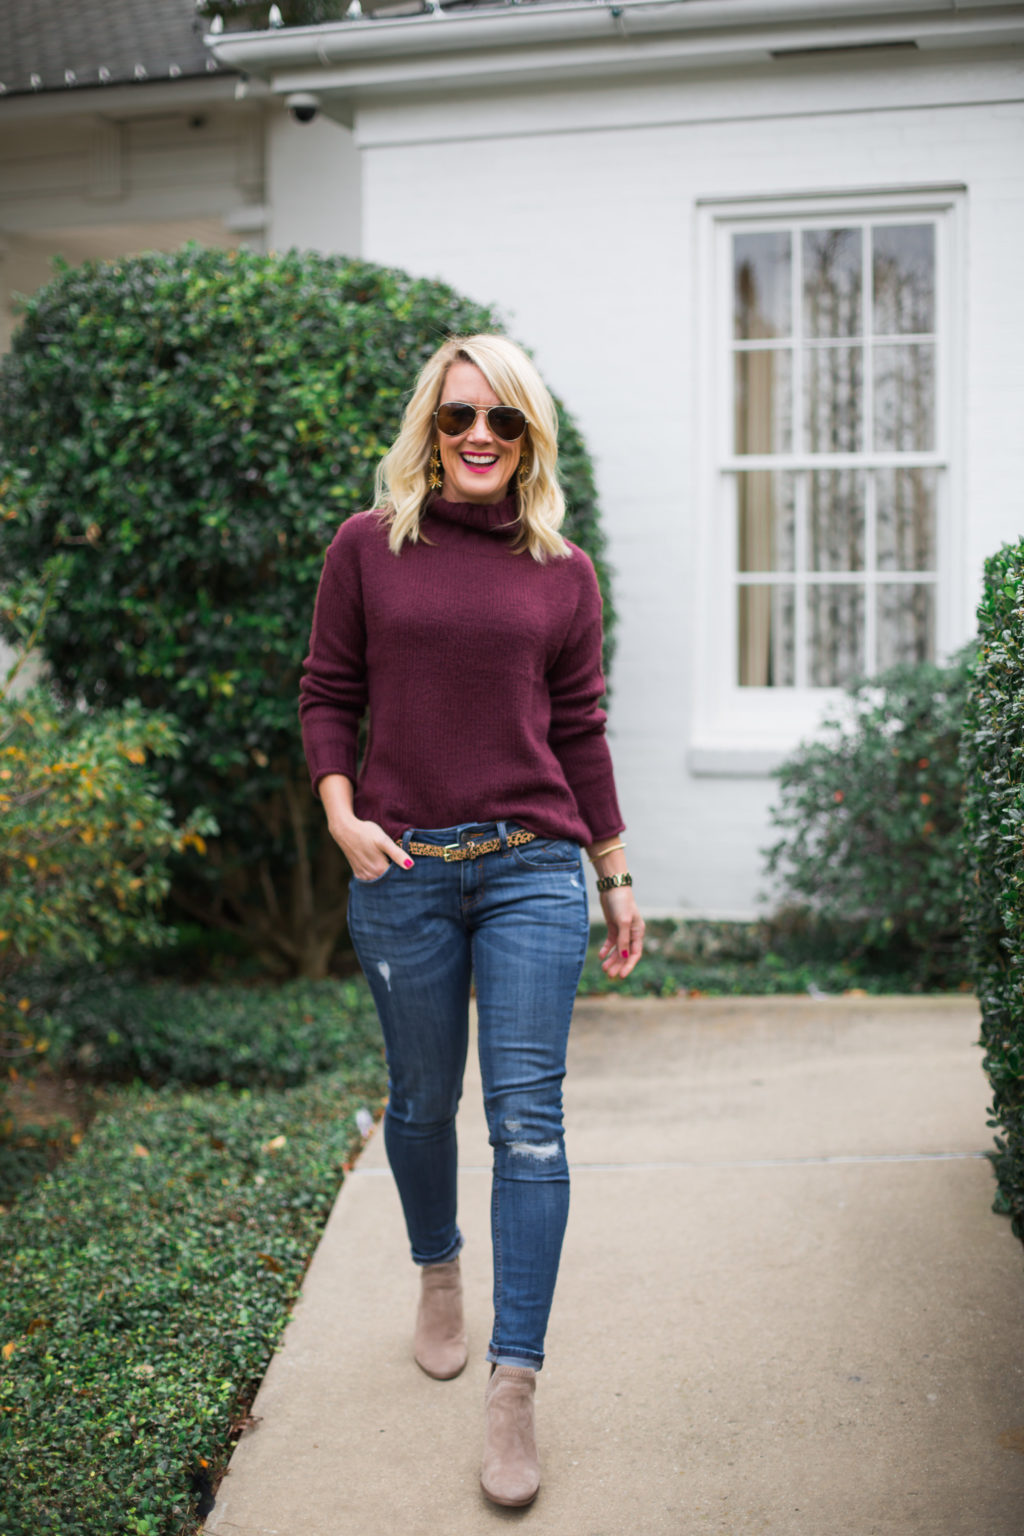 Wear Ankle Boots with Skinny Jeans